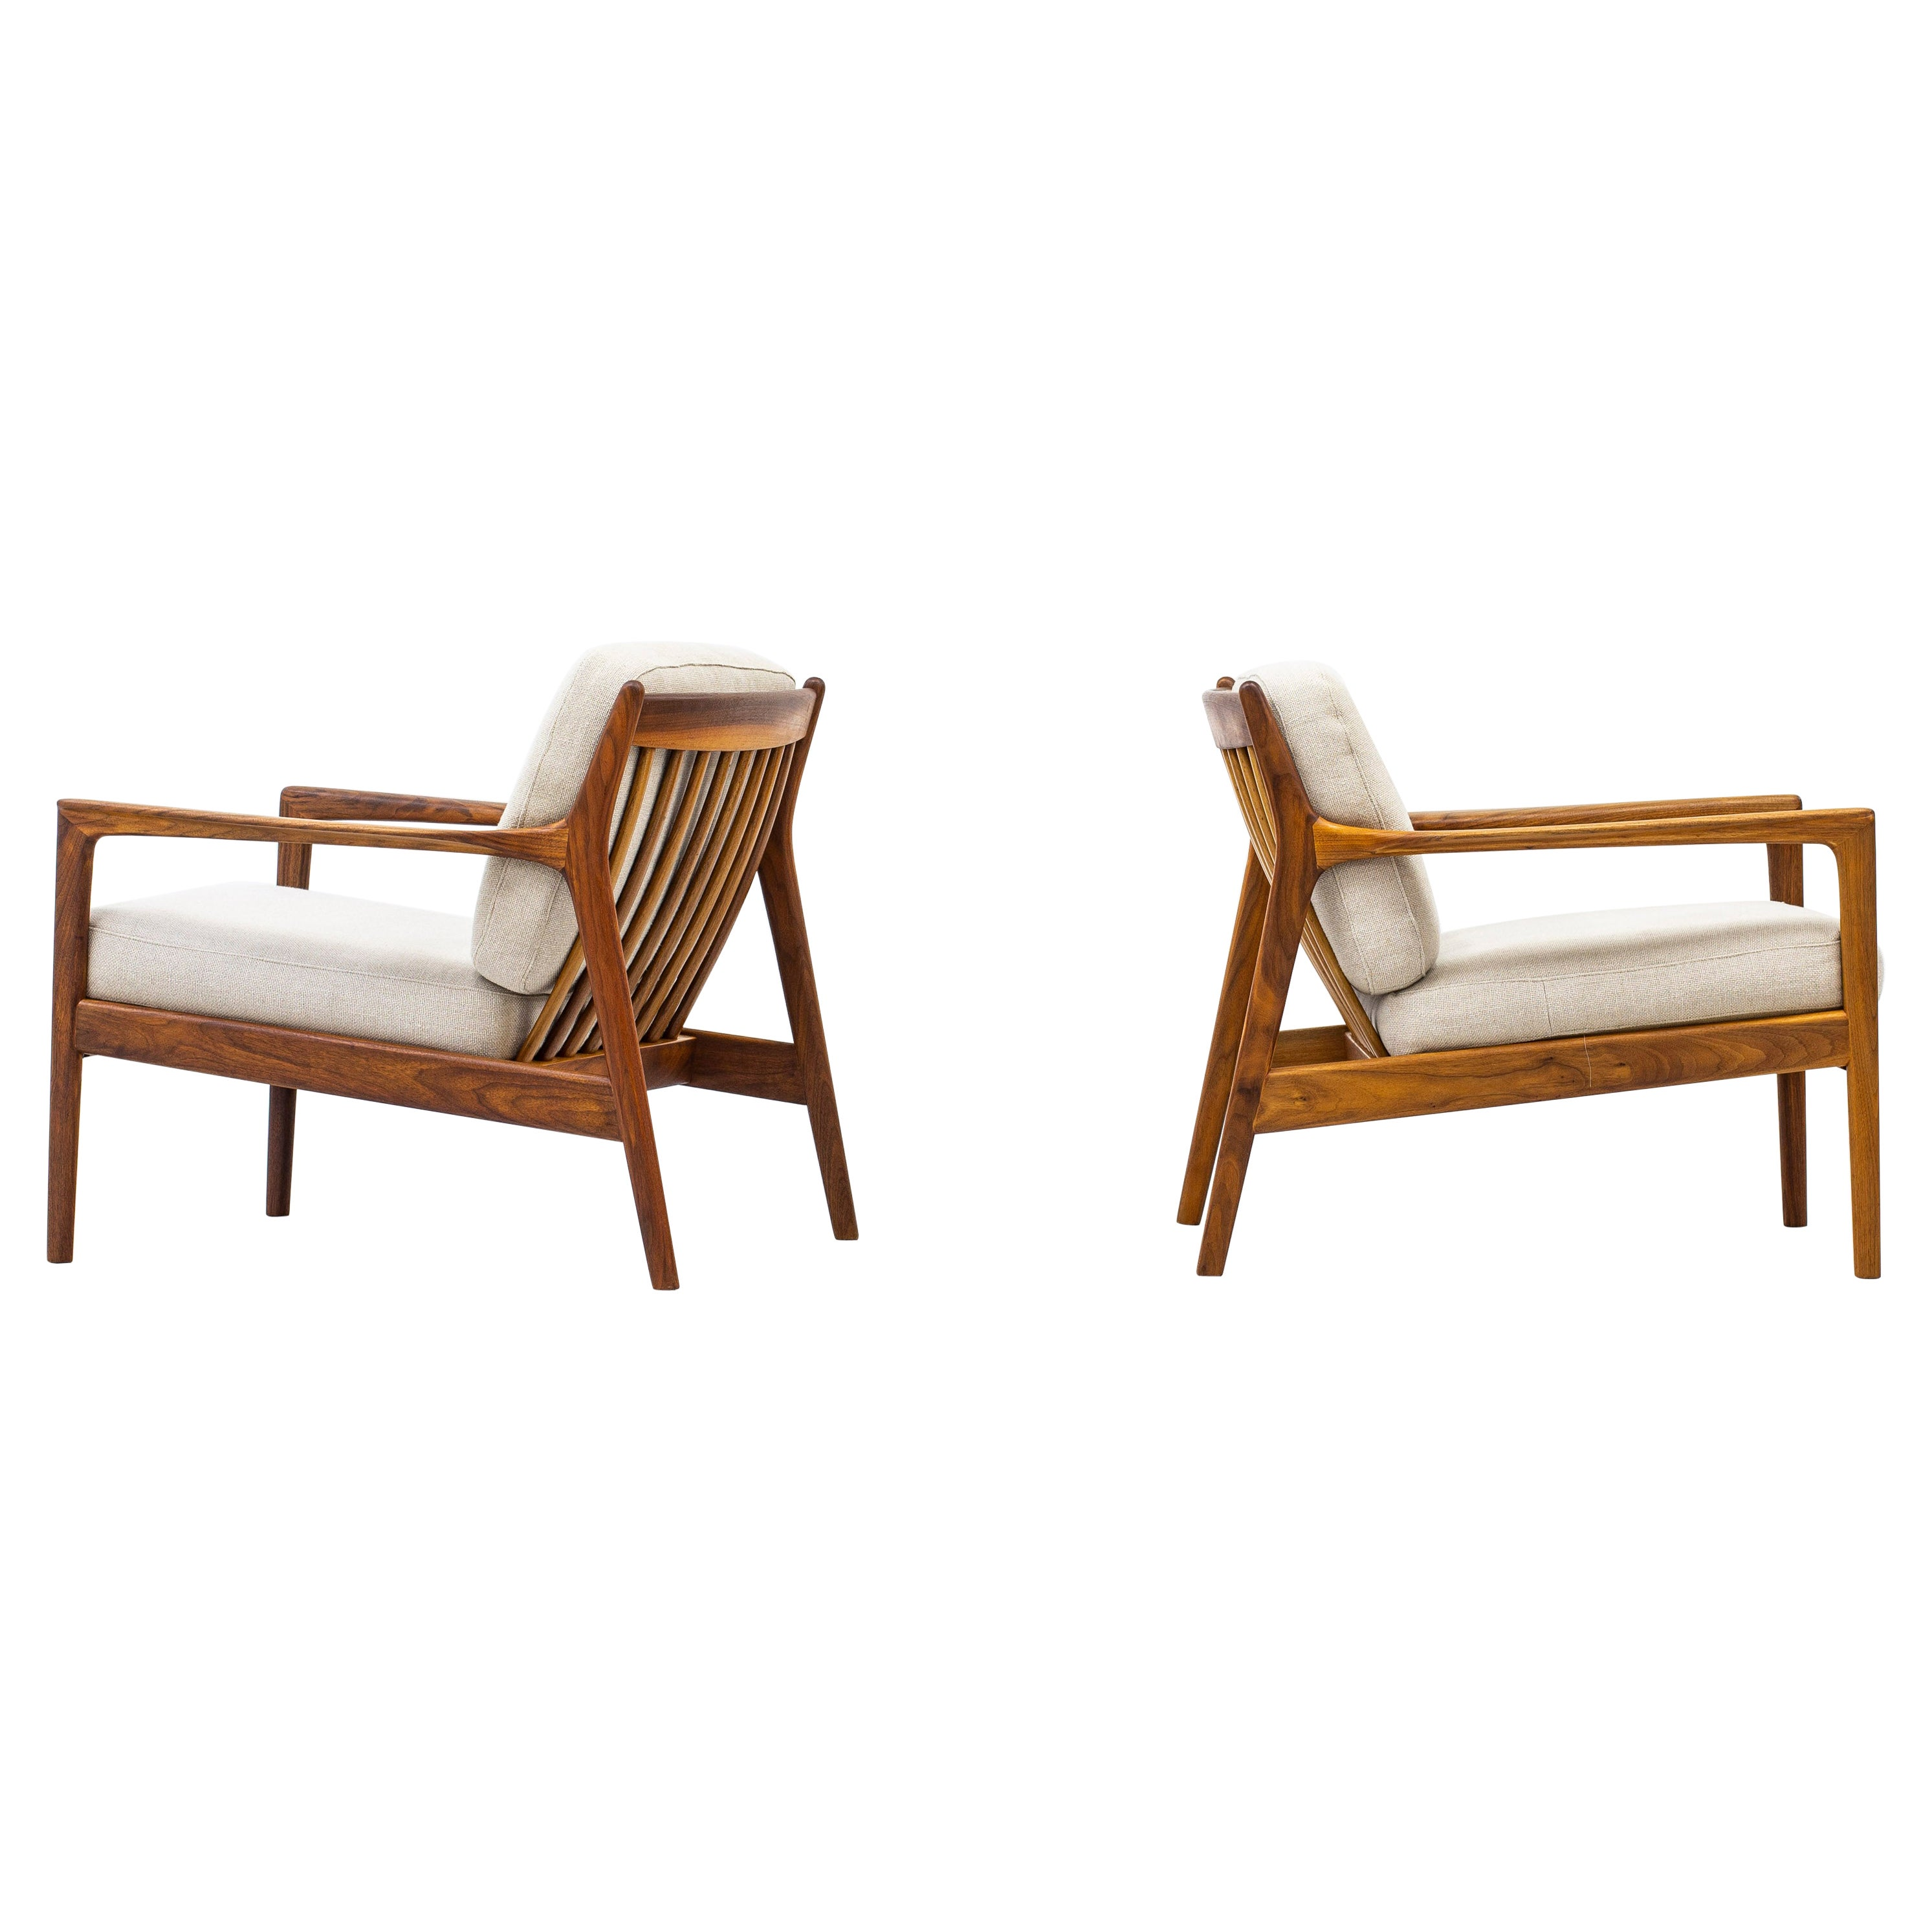 """Lounge Chairs """"USA 75"""" by Folke Ohlsson for Dux, Sweden, 1950s"""